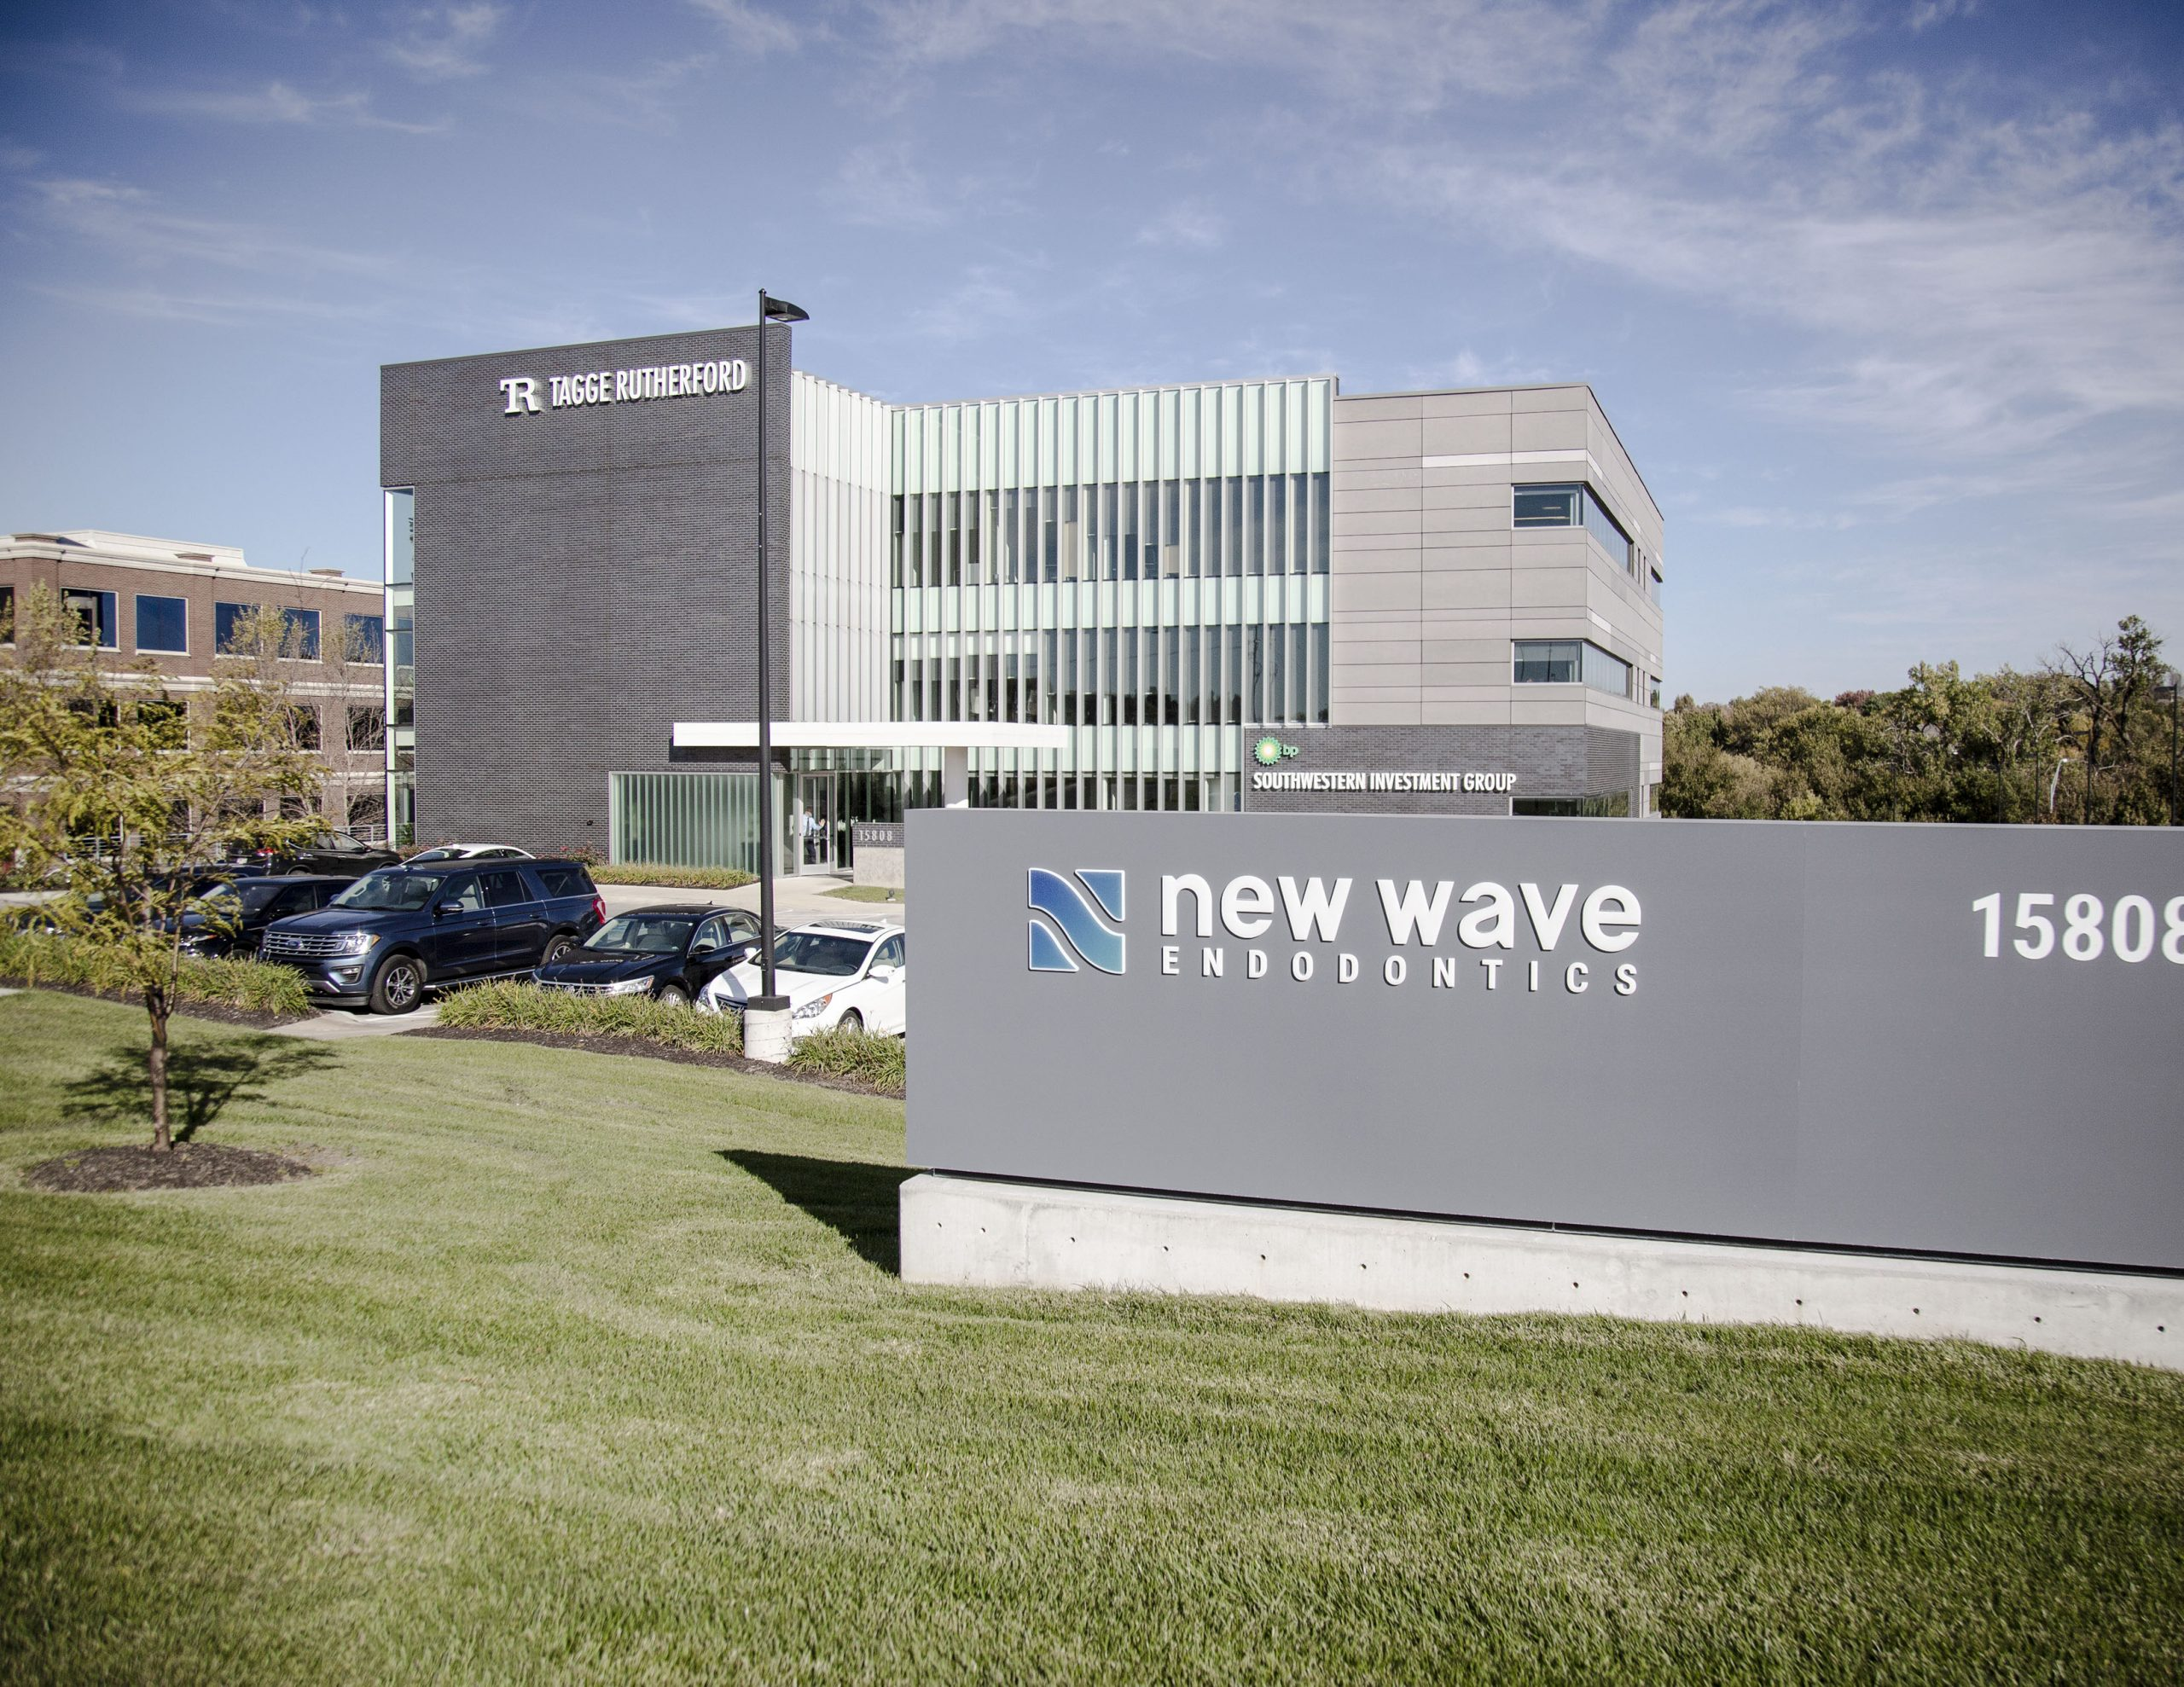 new wave endodontics sign outside Tagge Rutherford buildind